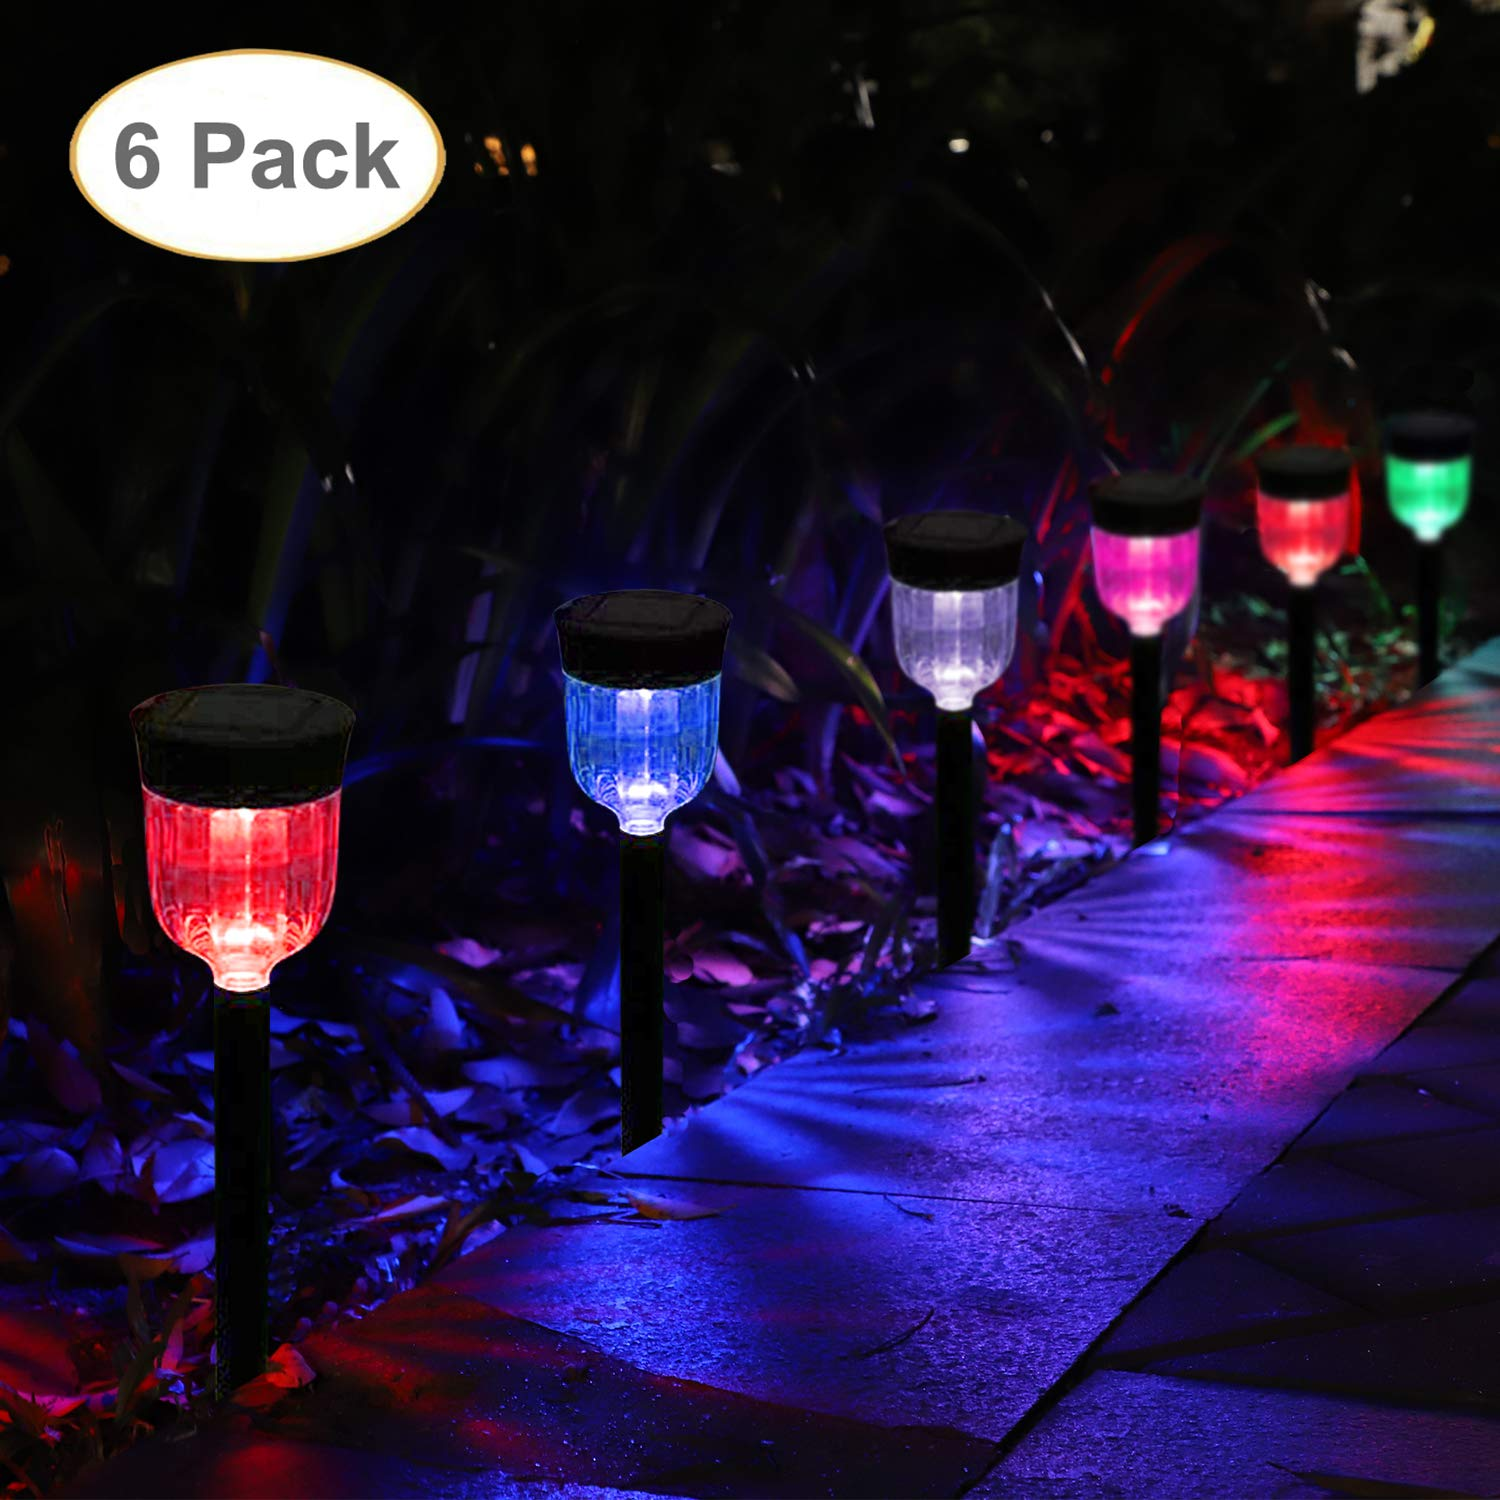 GELOO Solar Outdoor Lights 6-Pack Solar Pathway Lights Outdoor Garden Lights Outdoor Landscape Lighting for Lawn, Yard, Patio, Driveway, Walkway, 7 Colors Changing by GELOO